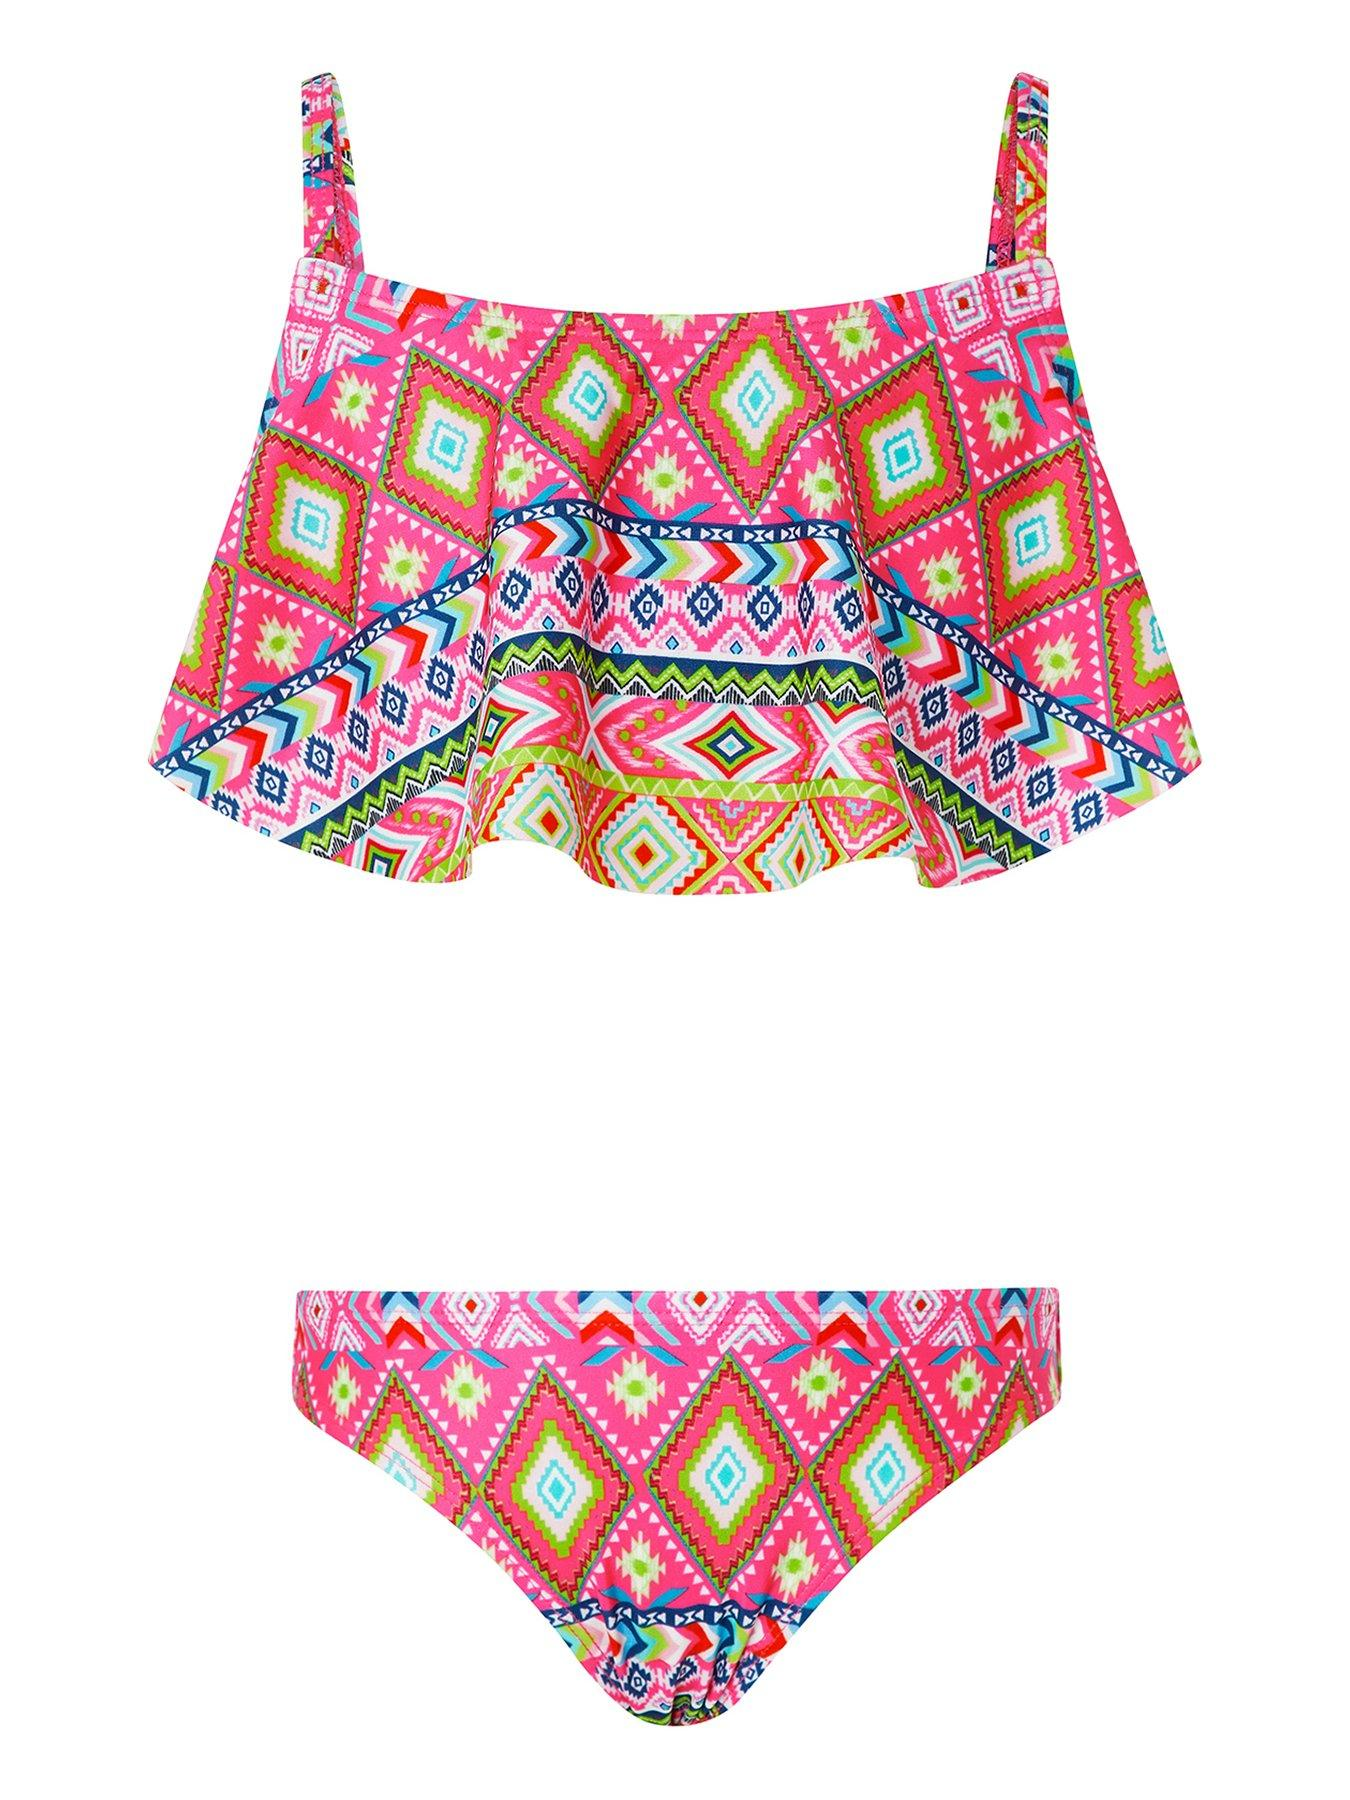 Ages 7-16Yrs Girls Summer Pink Bikini//Swimwear